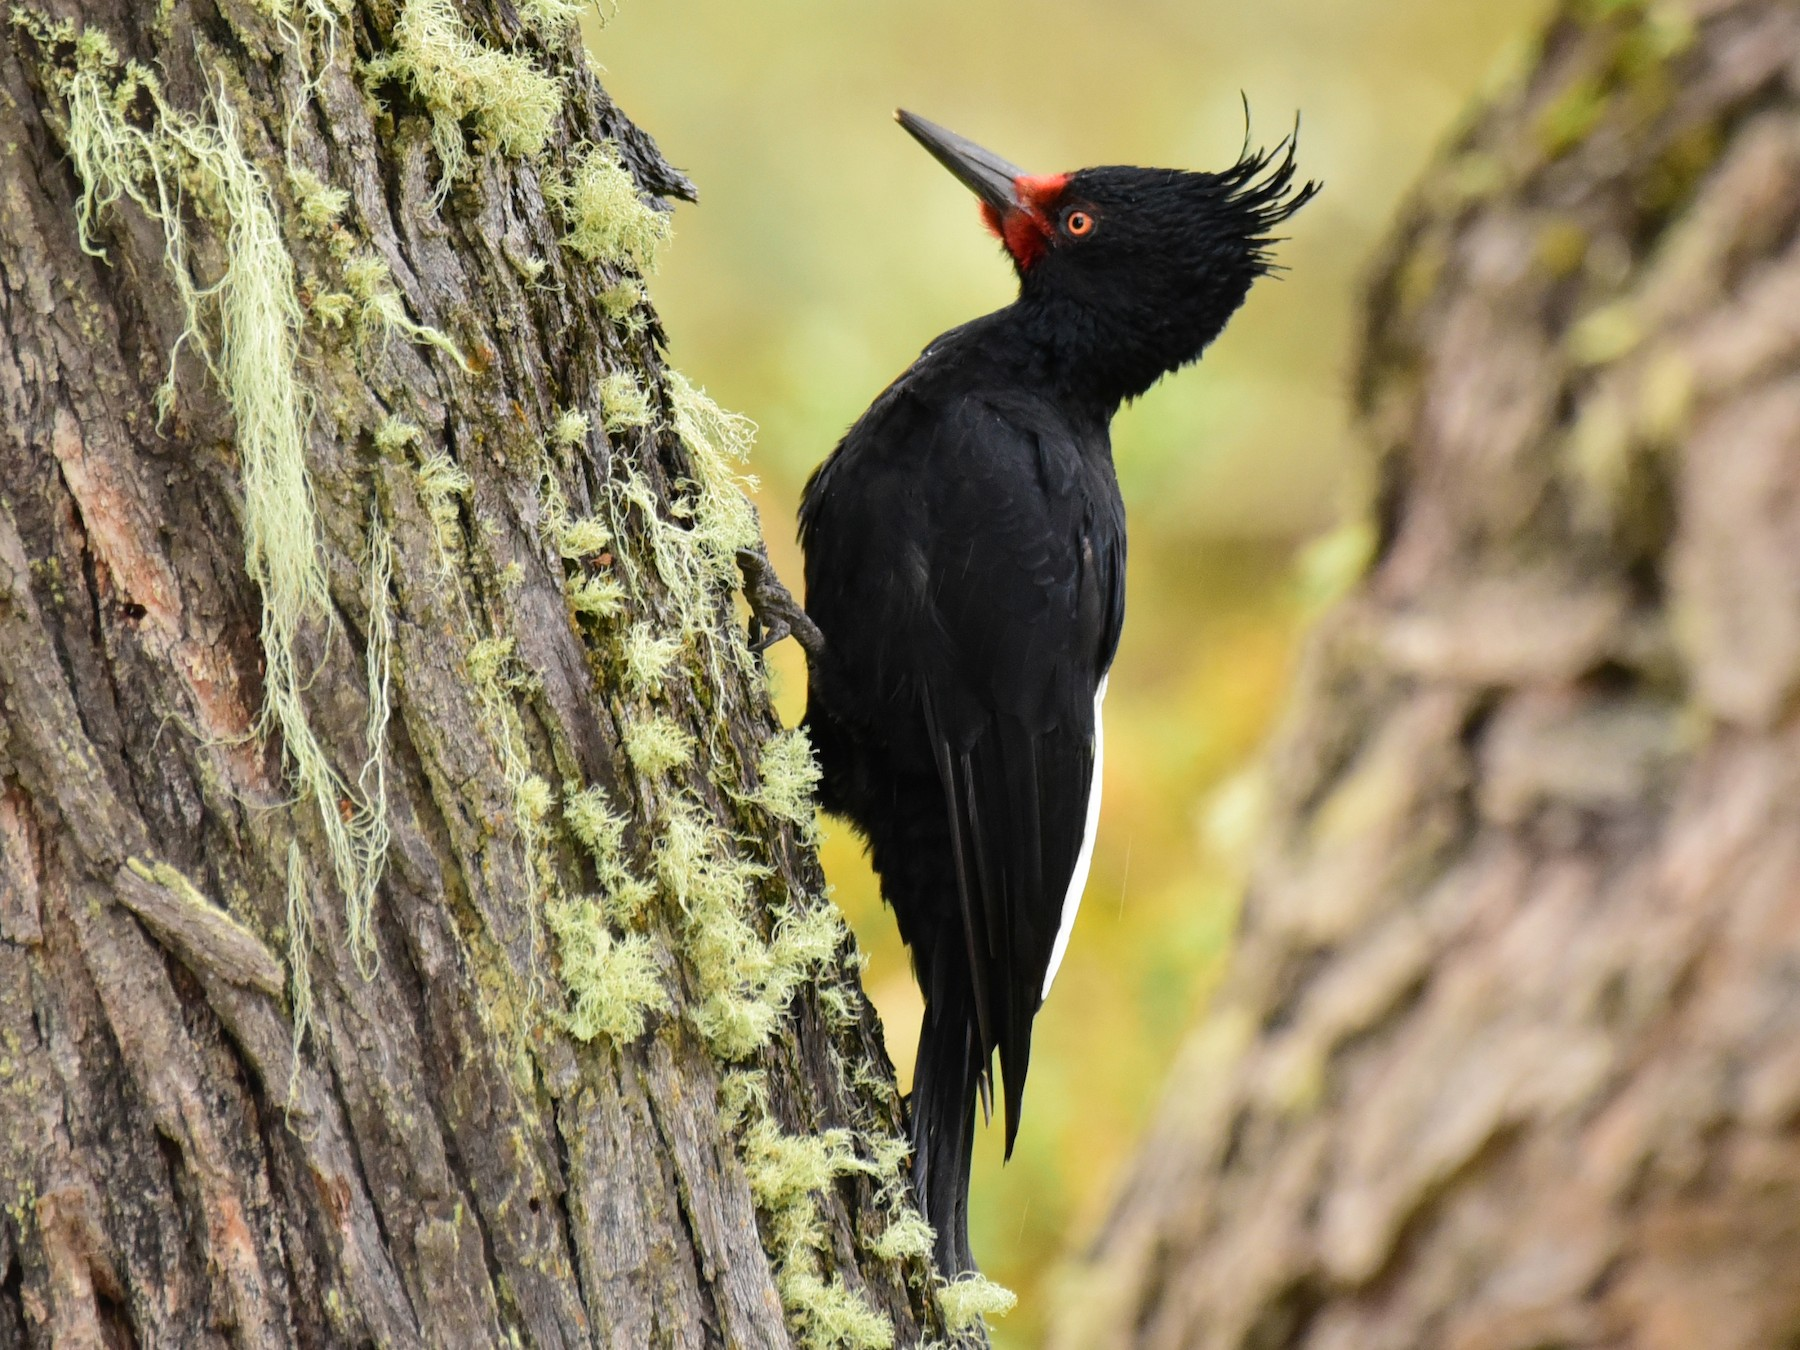 Magellanic Woodpecker - Luiz Moschini